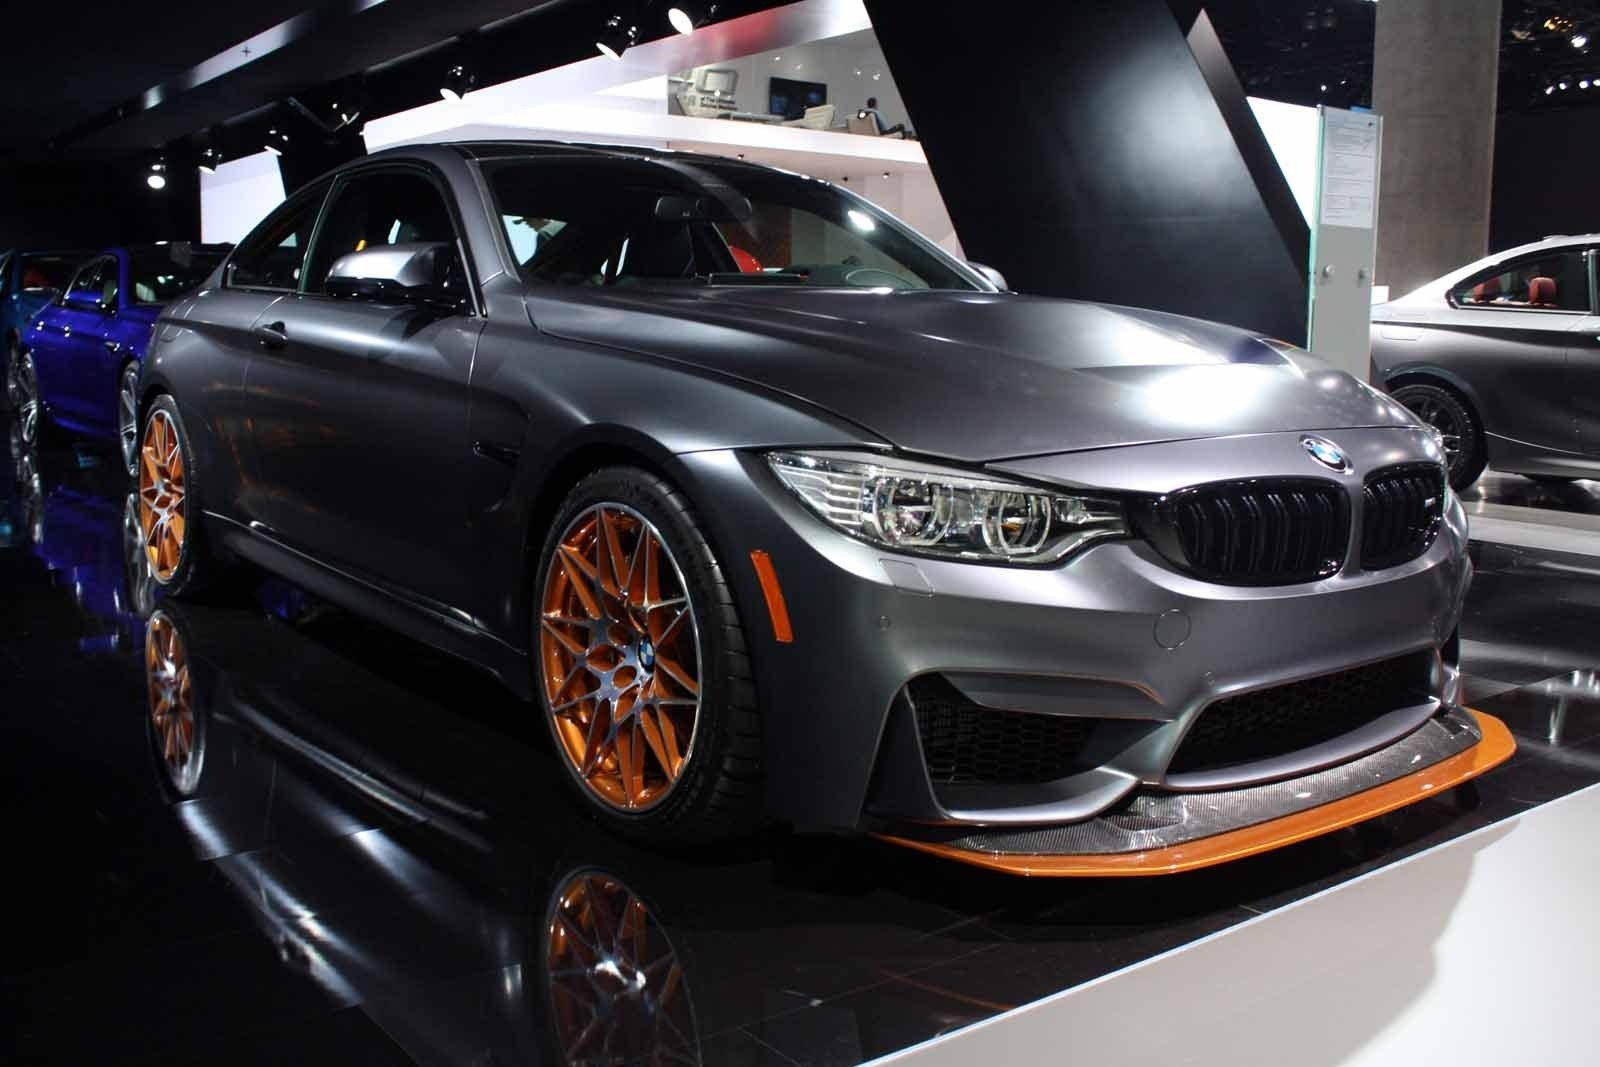 Latest 2017 Bmw M4 Prices Auto Car Update Free Download